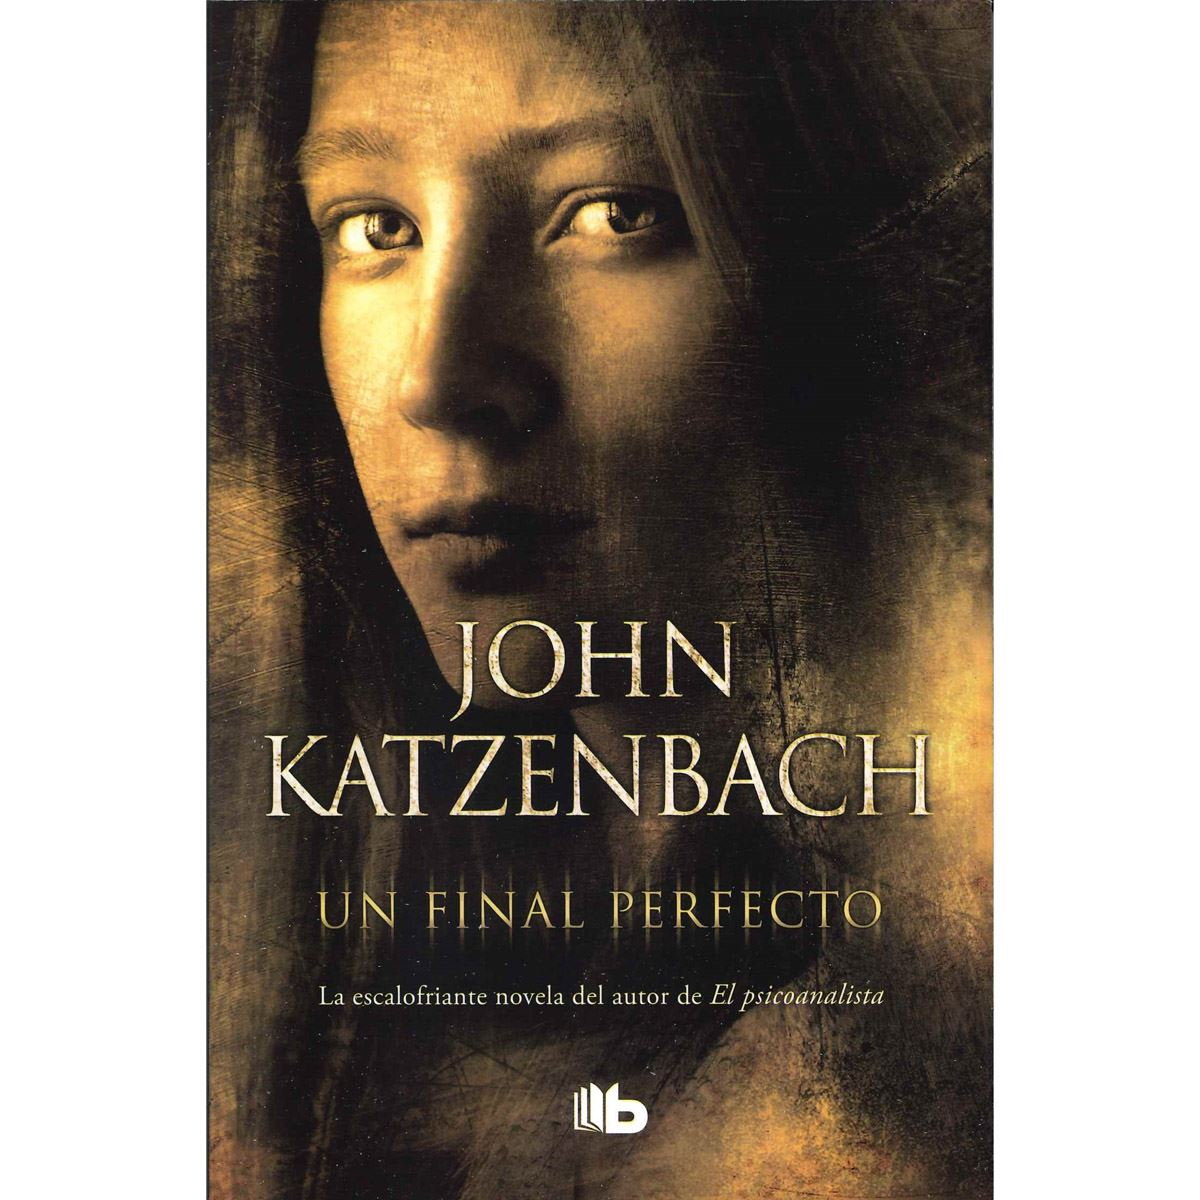 Un final perfecto Libro - Sanborns